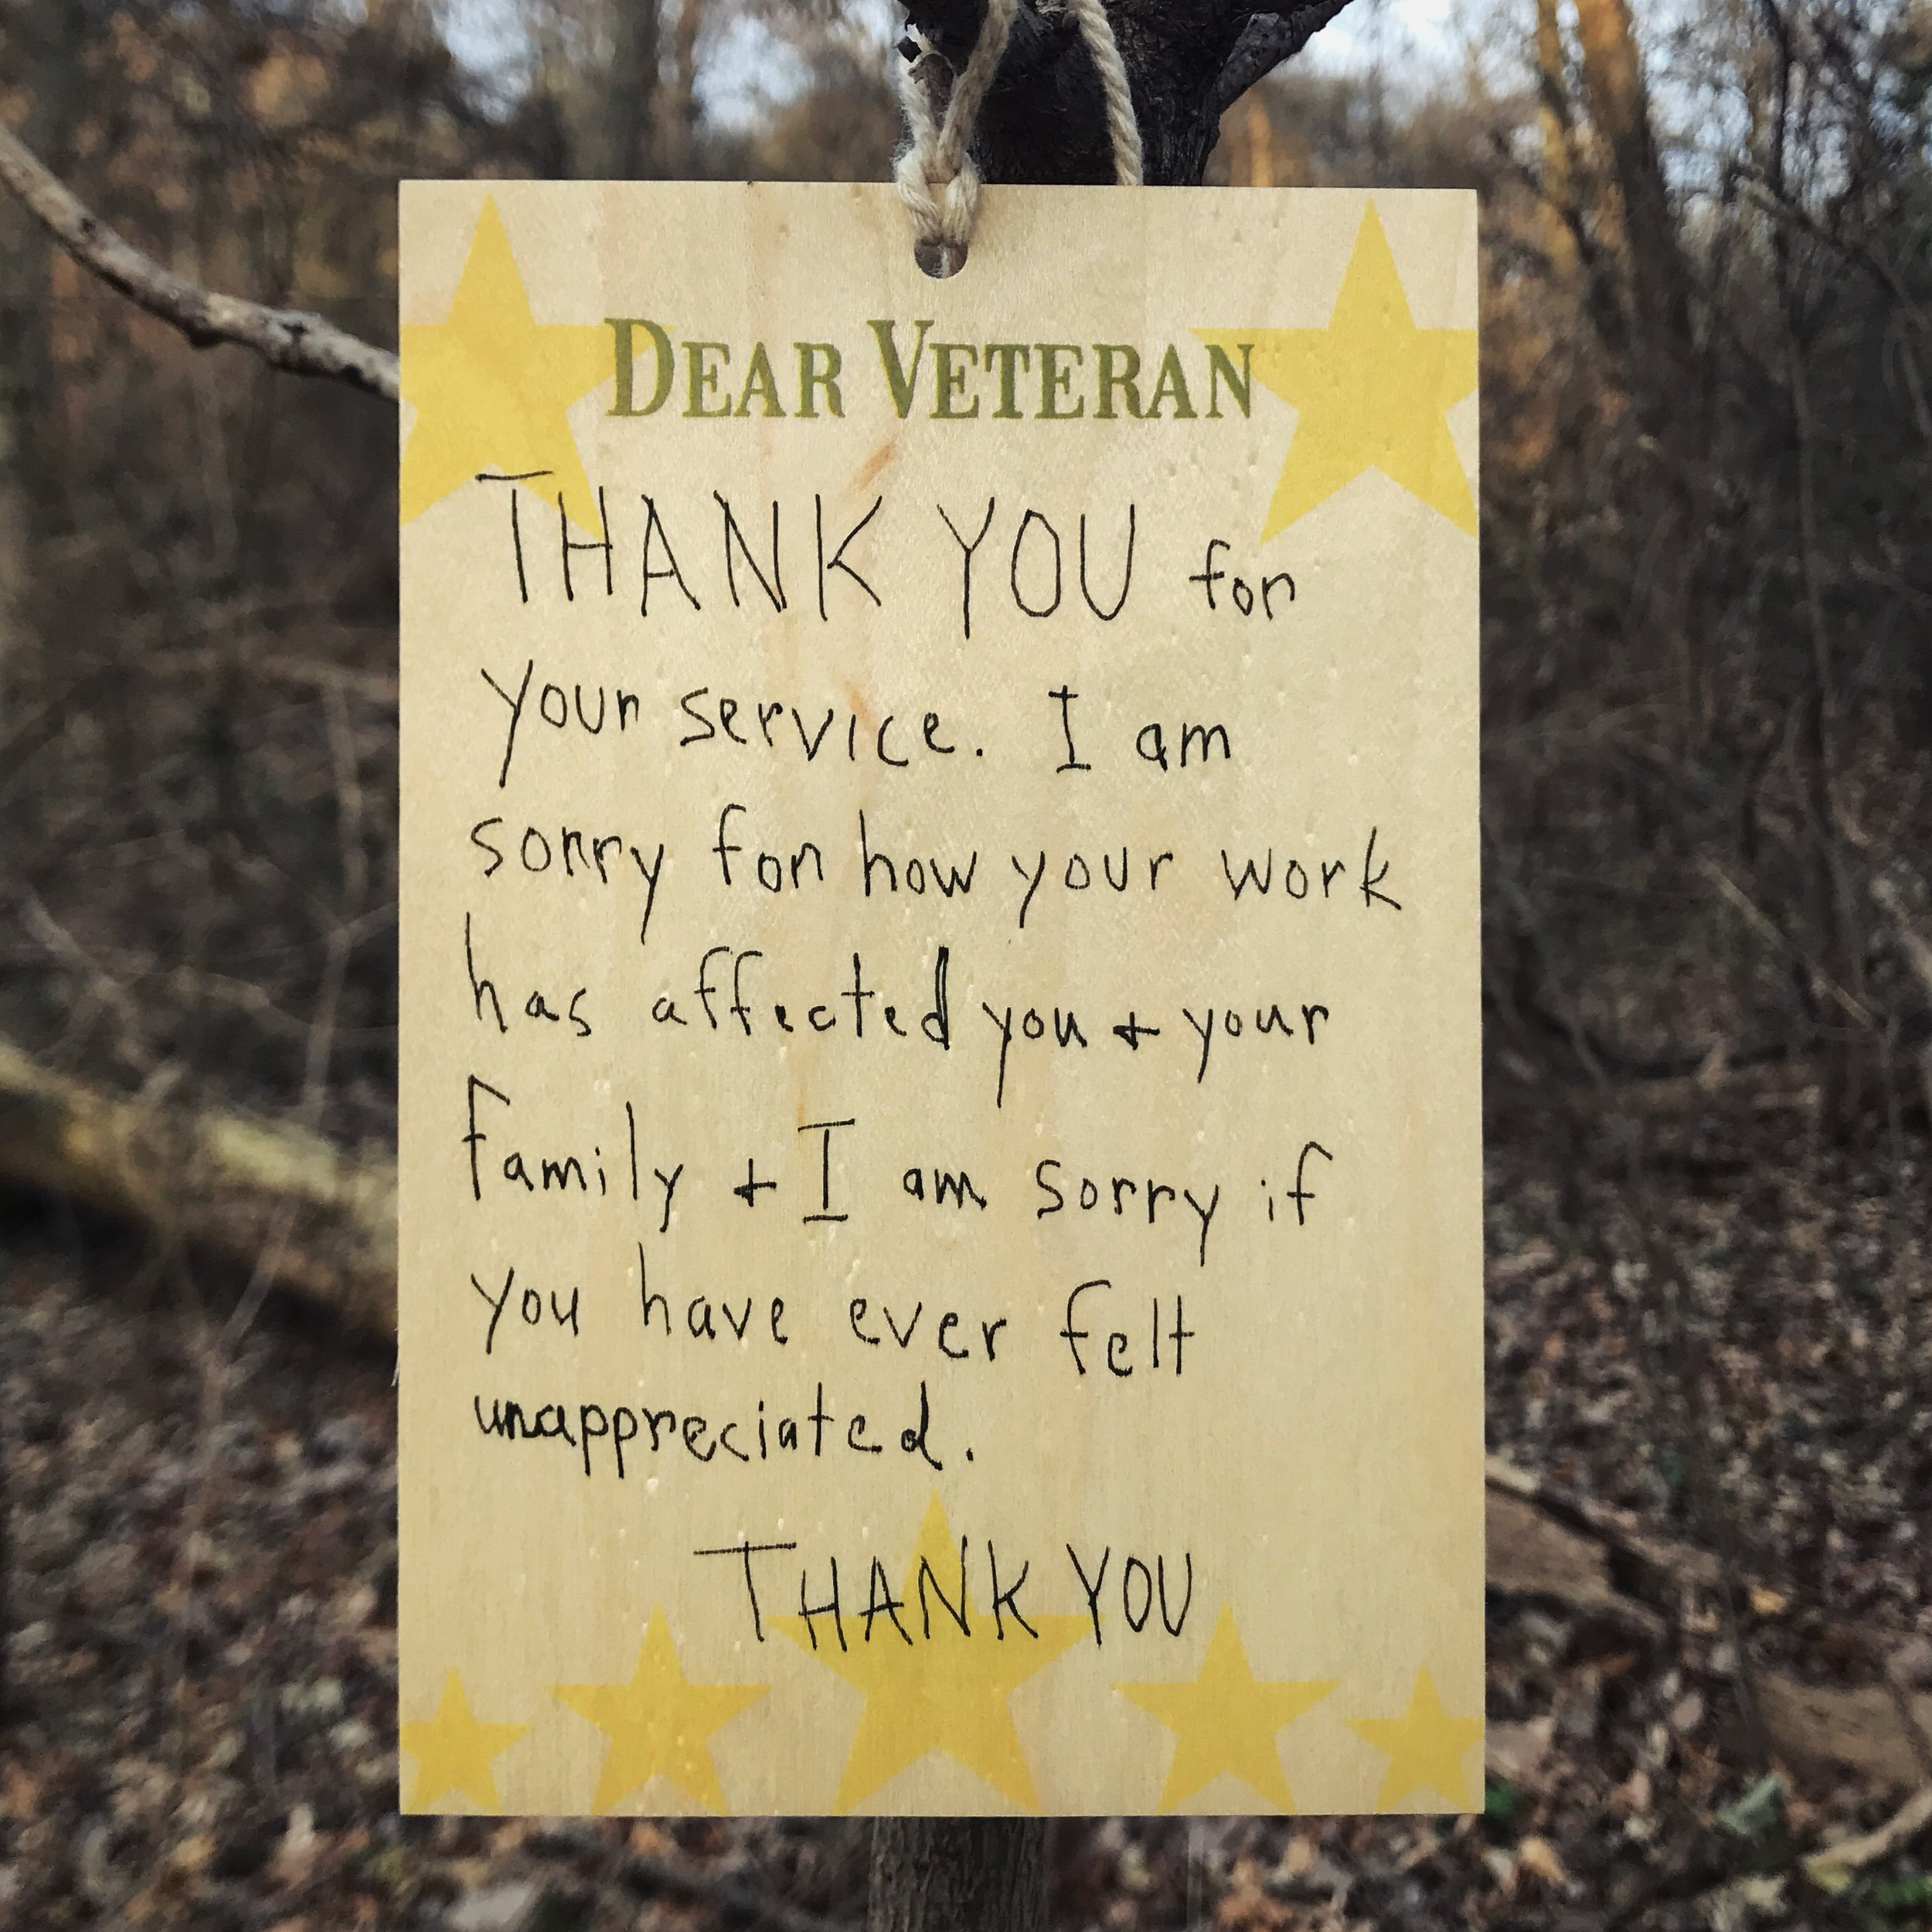 DearVeteran_DEC02_2017.JPG